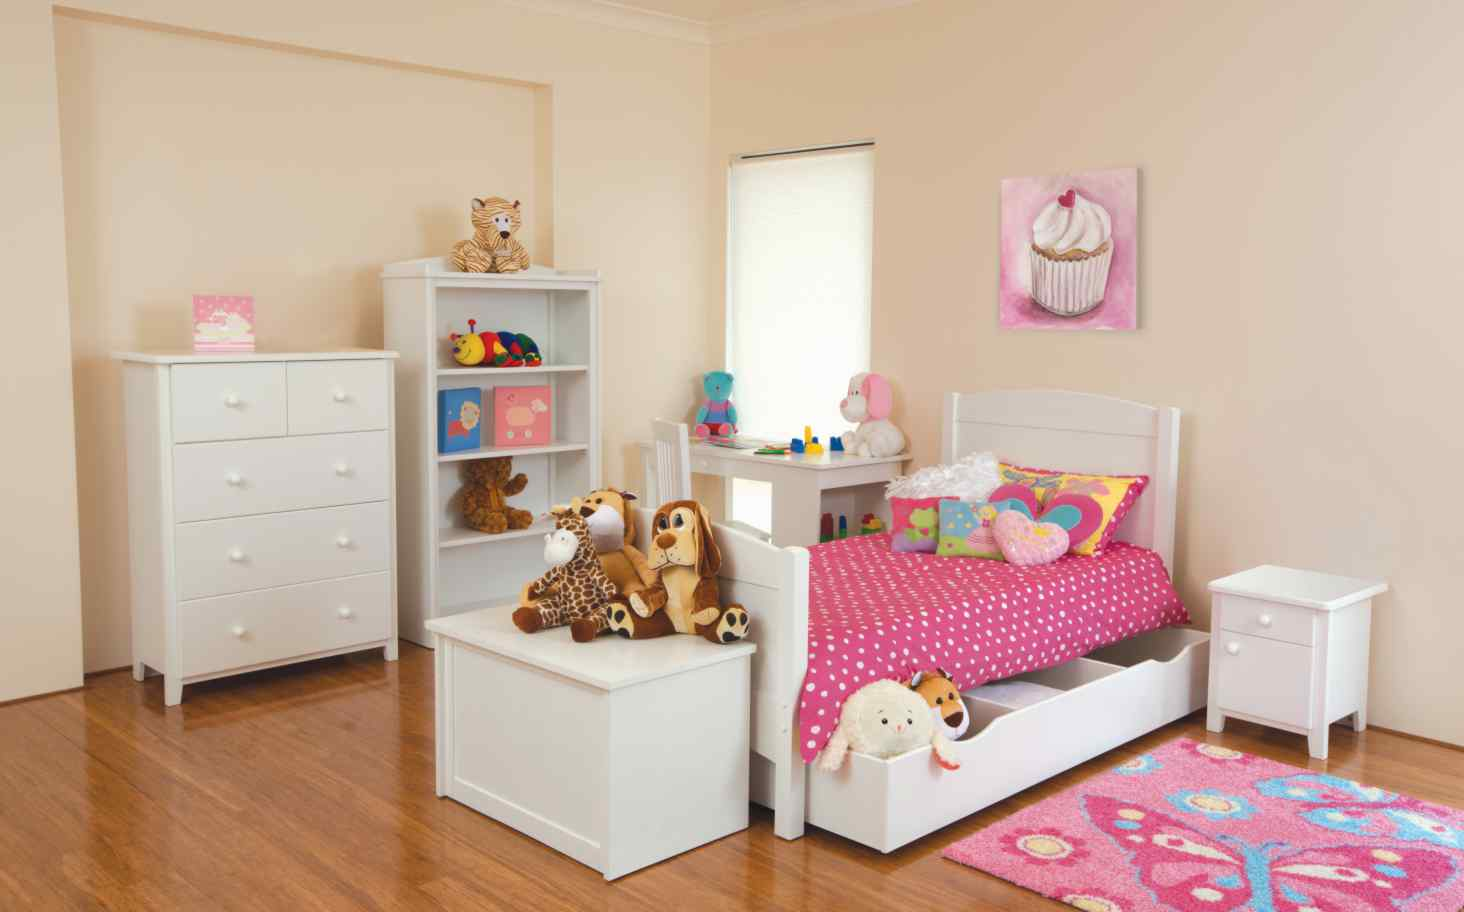 Kids bedroom furniture perth decor ideasdecor ideas - Kids bedroom photo ...